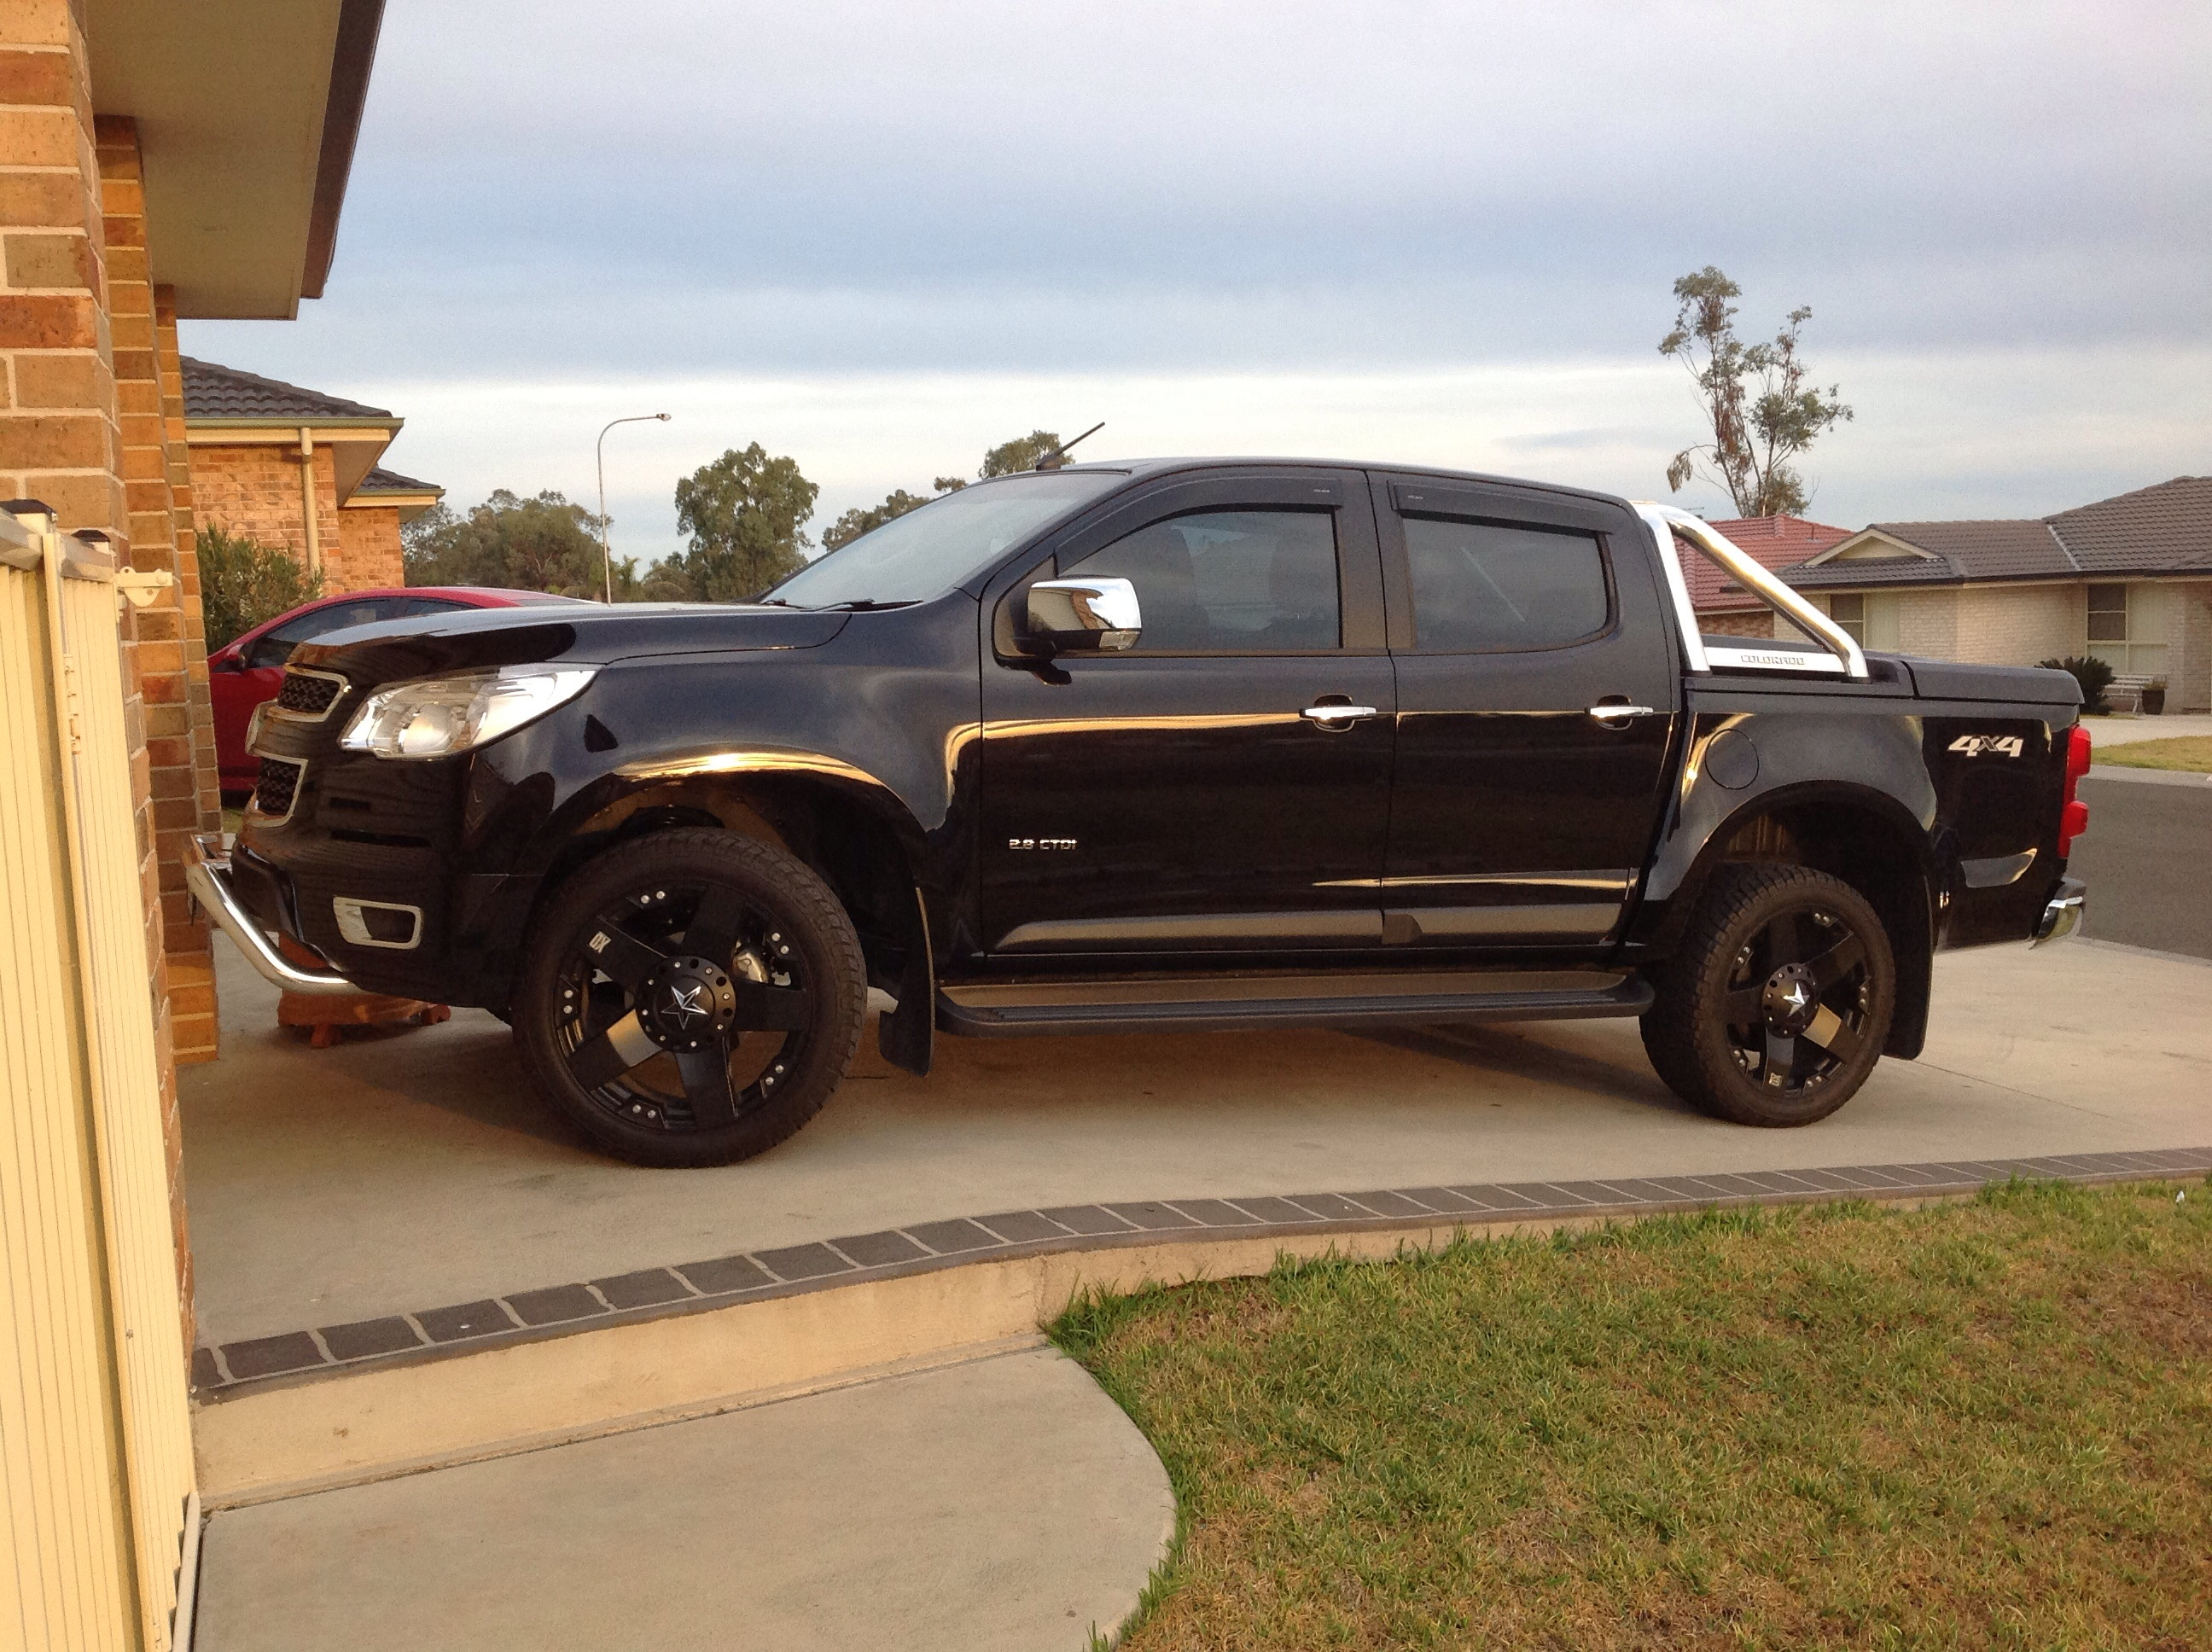 2012 Holden Colorado Ltz 4x4 Rg Car Sales Nsw North